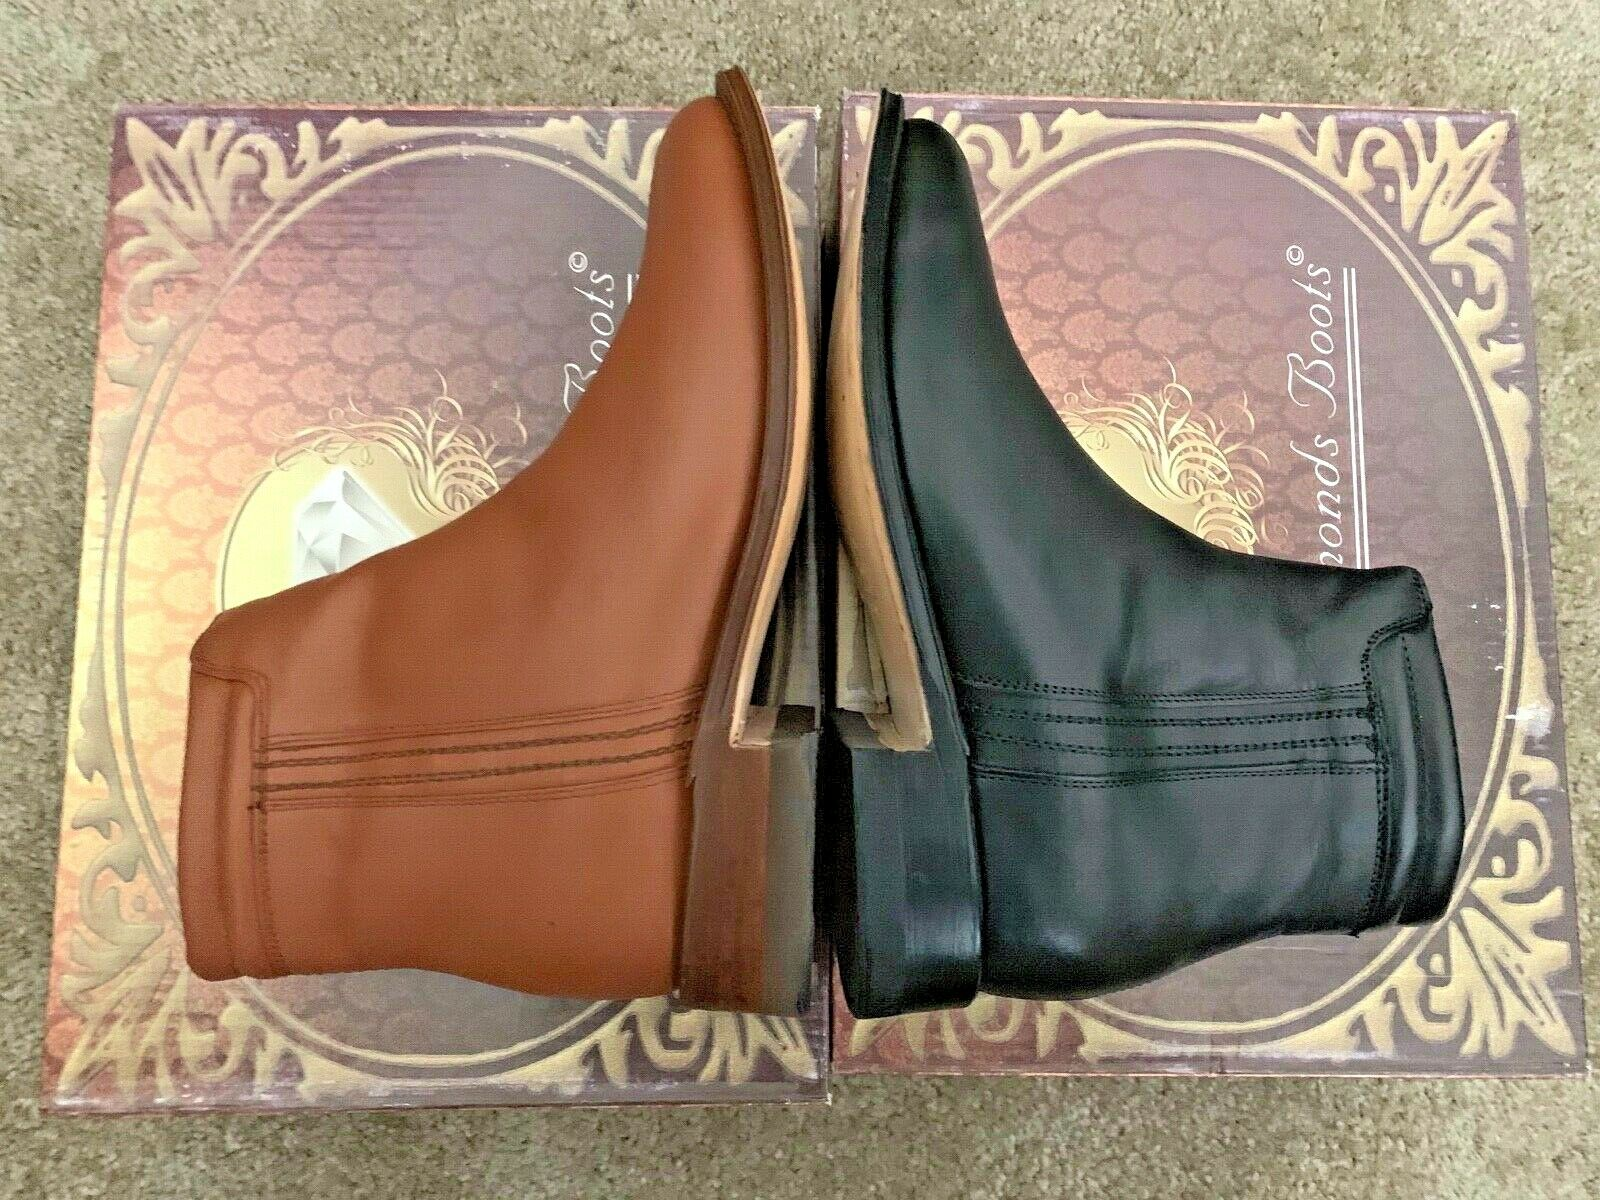 White Diamond Boots for Men - Leather upper and leather soles (MADE IN MEXICO)